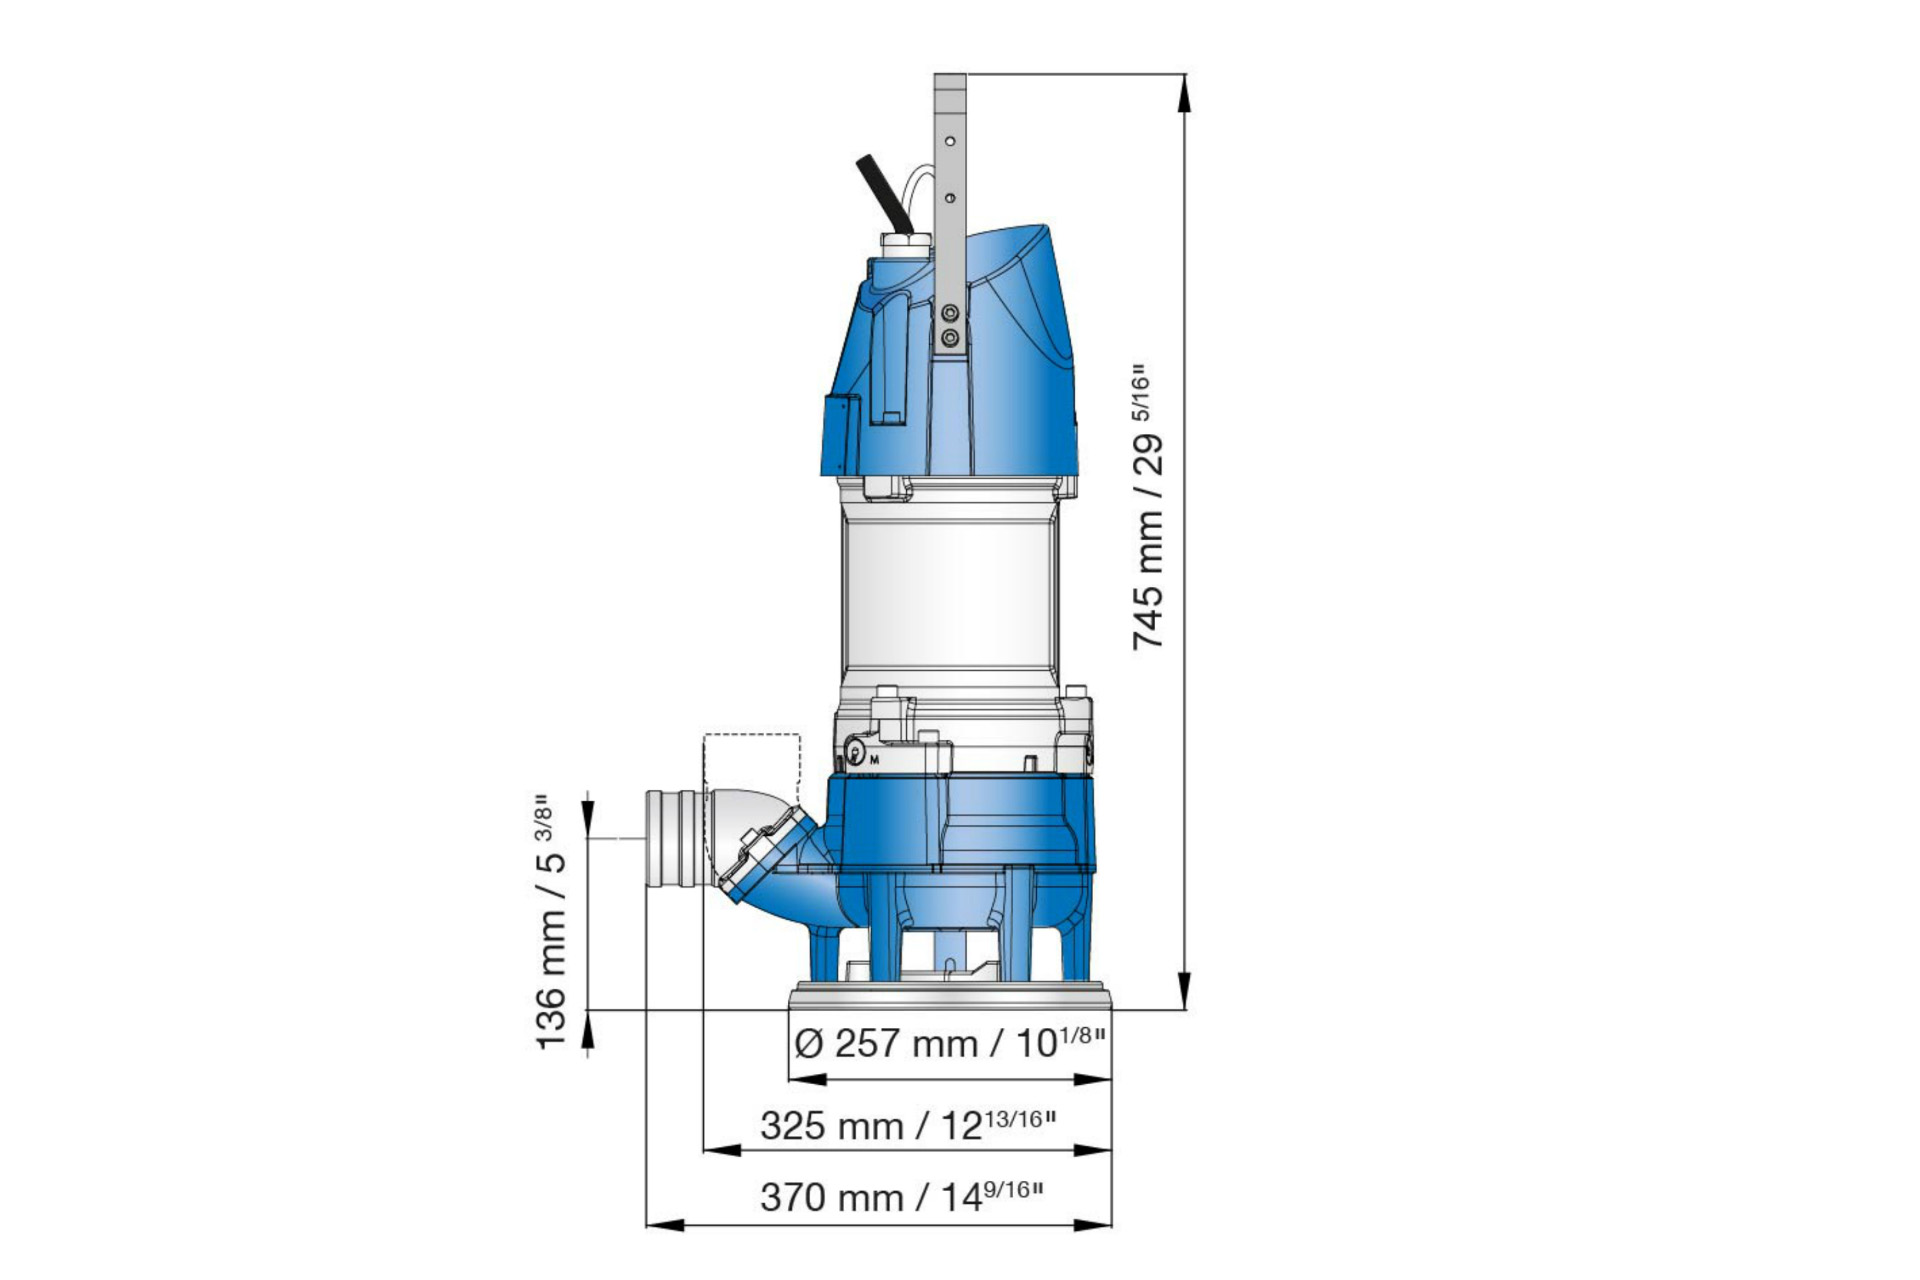 hight resolution of dimension drawing of submersible sludge pumps xjs 25 and xjs 40